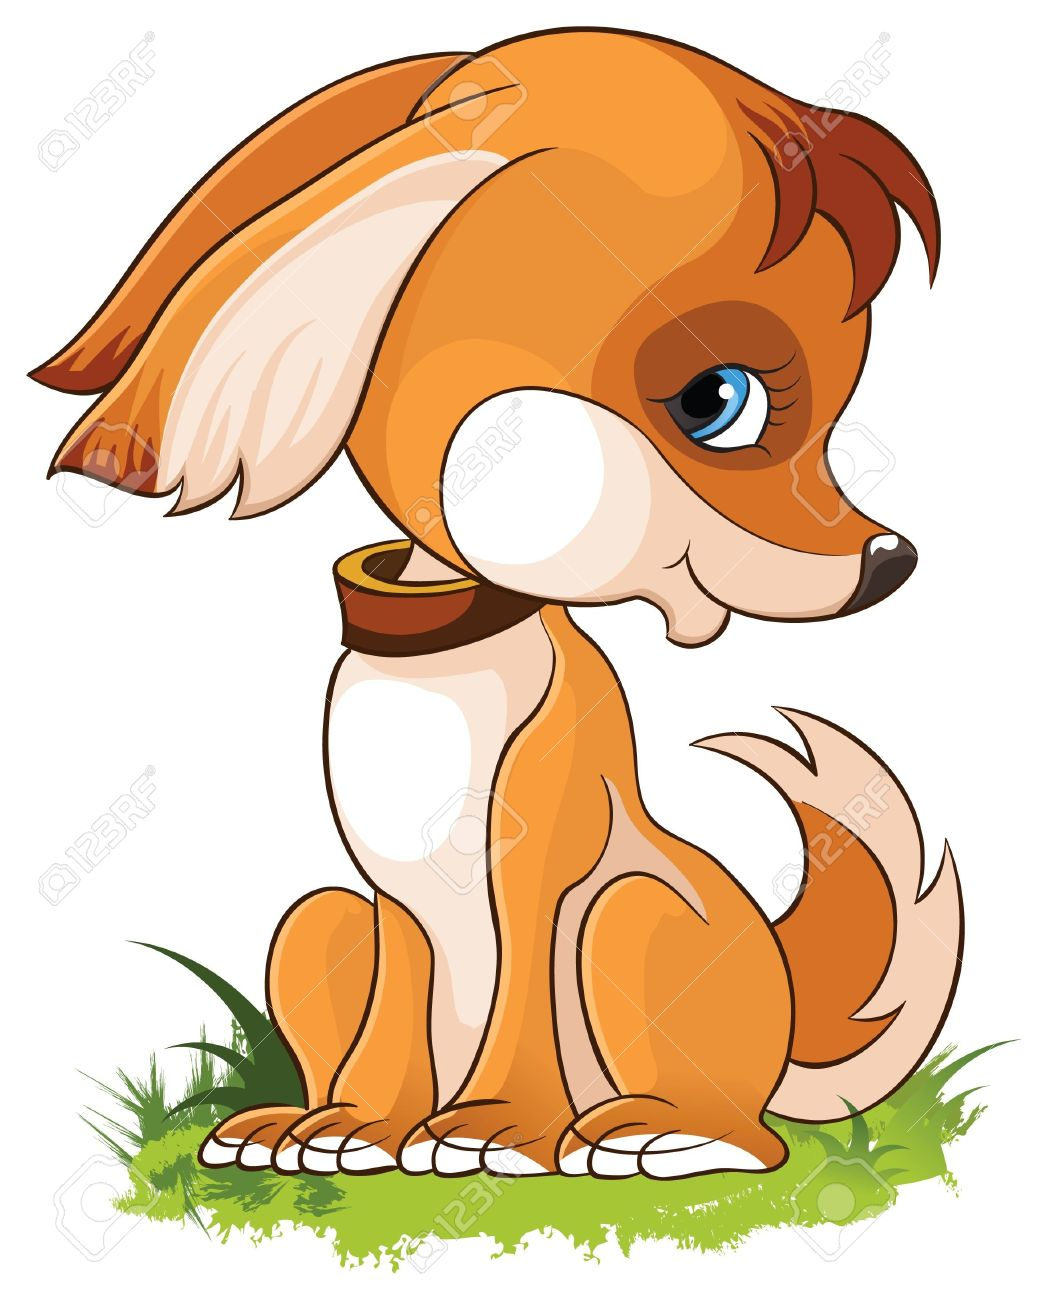 Illustration Of Cute Cartoon Puppy Dog Isolated On White Background